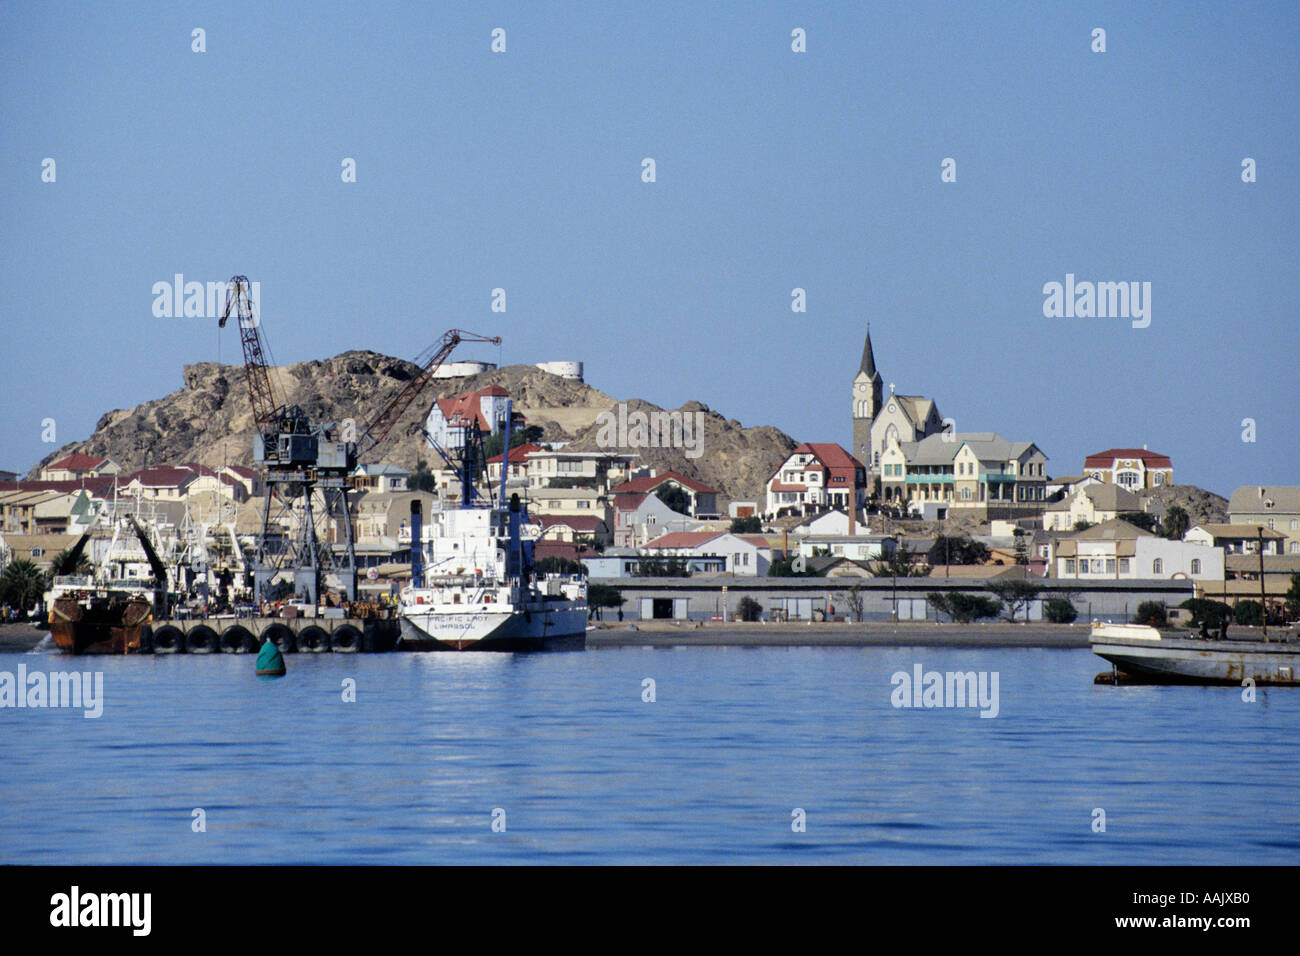 Luderitz town from the bay Luderitz Namibia Africa - Stock Image